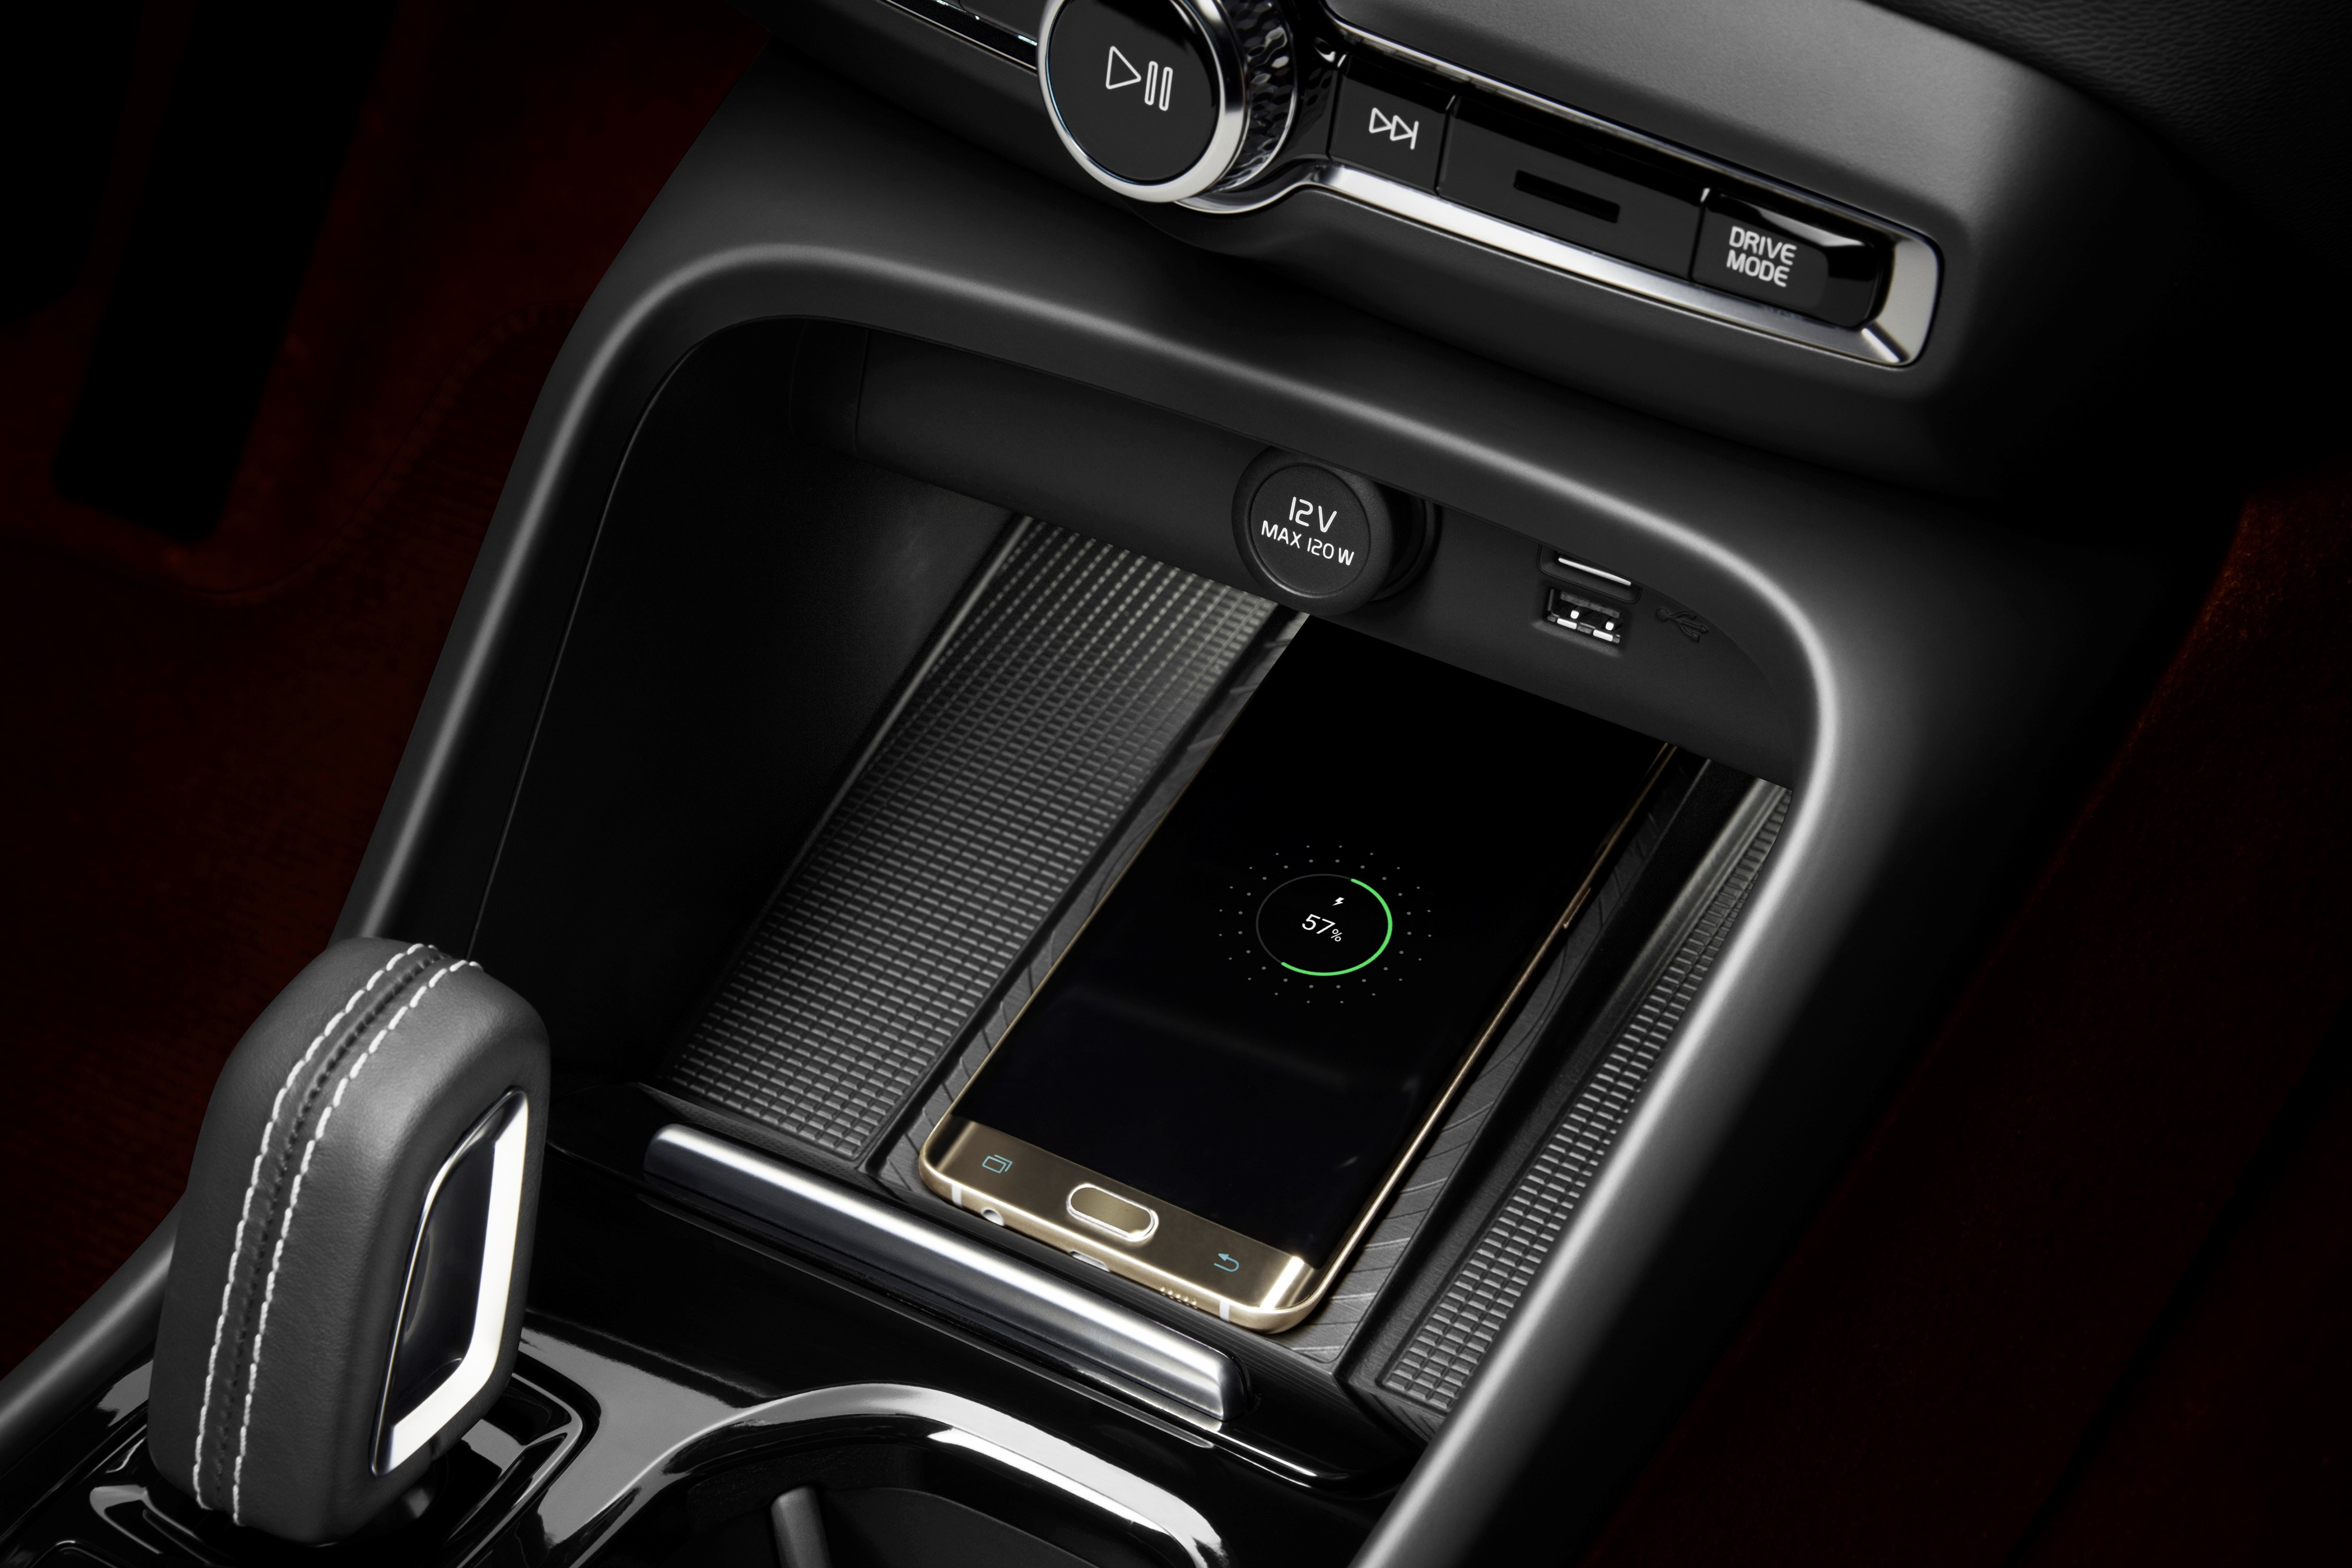 2018 volvo on call.  2018 vehicle aimed at a more techaware and citydwelling audience the xc40  is being introduced with some new services as part of volvo on call app inside 2018 volvo on call